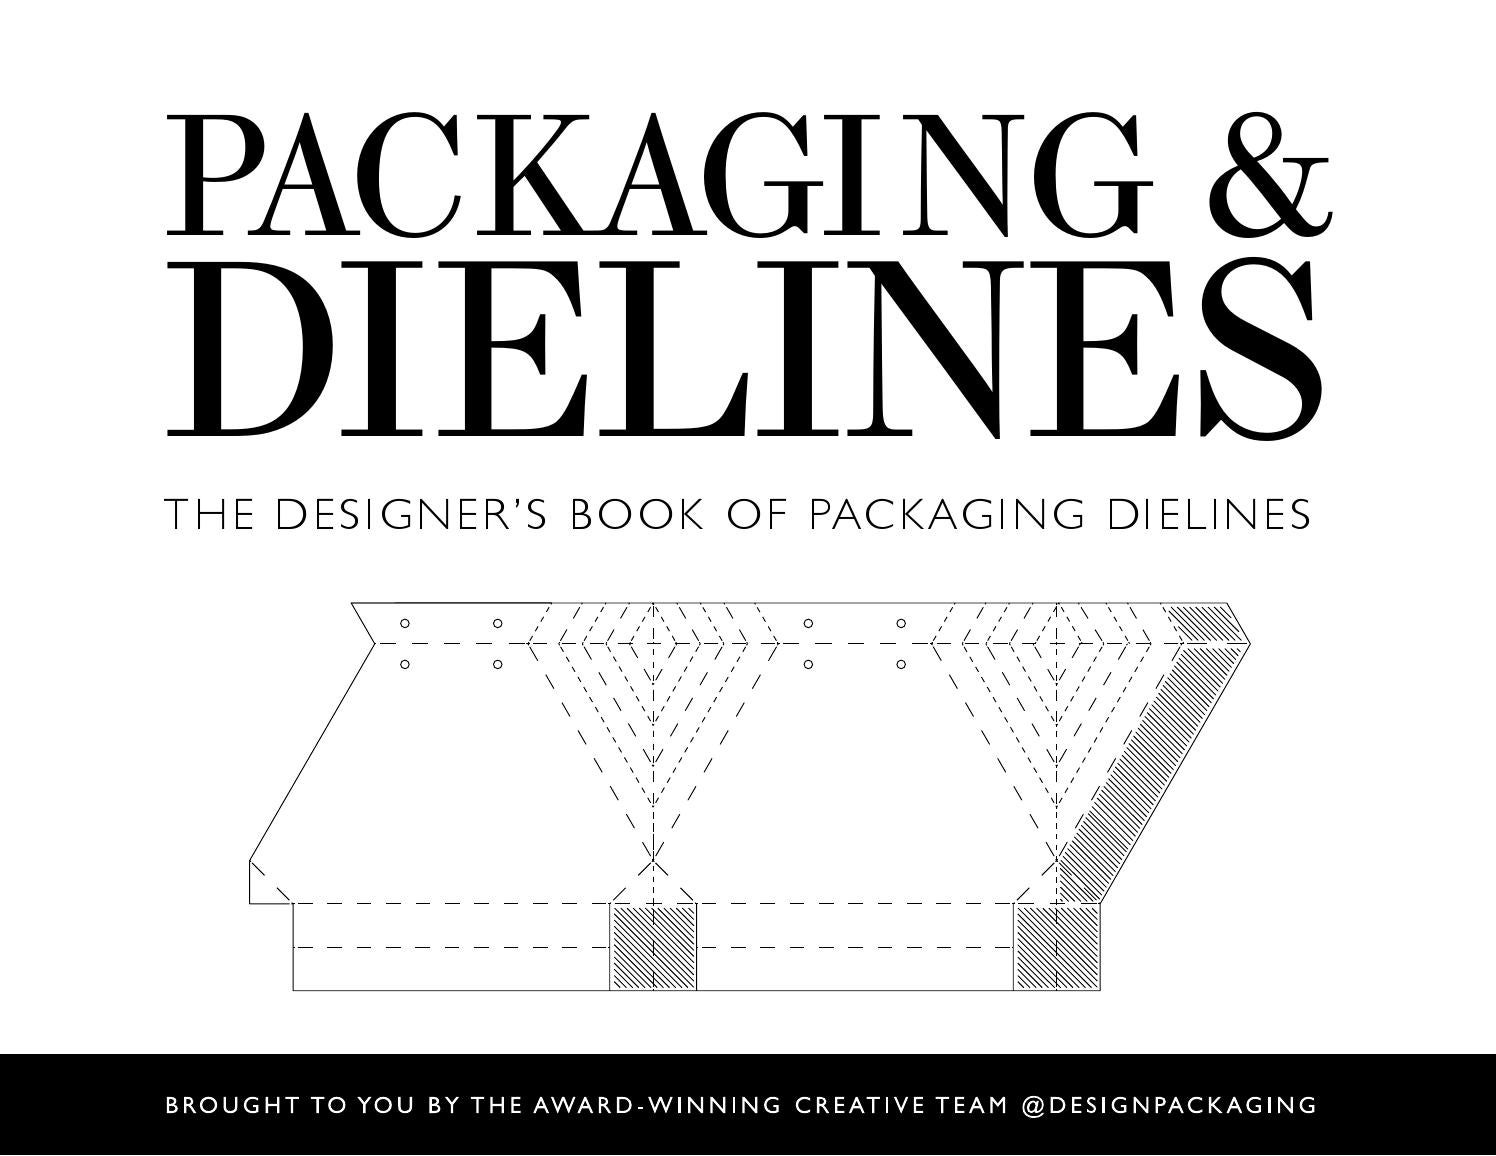 Packaging dielines the designers book of packaging dielines by packaging dielines the designers book of packaging dielines by design packaging inc issuu pronofoot35fo Gallery